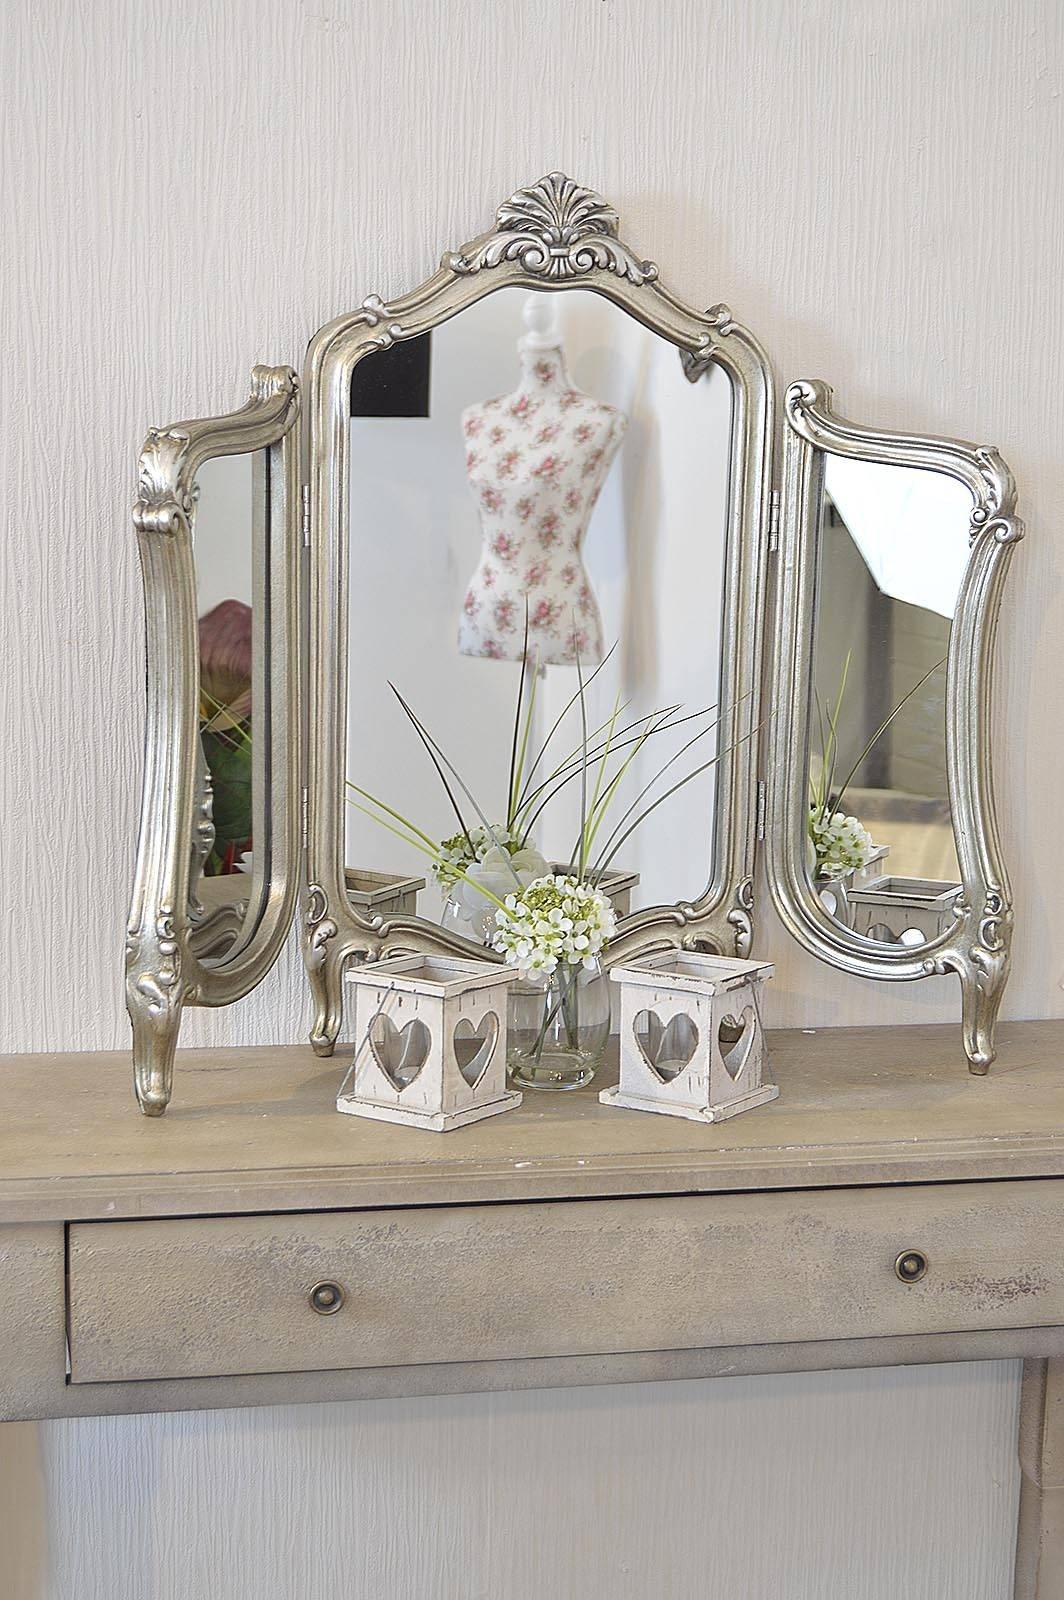 Stunning Antique Design Free Standing Dressing Table Mirror - M315 regarding Free Standing Table Mirrors (Image 9 of 15)